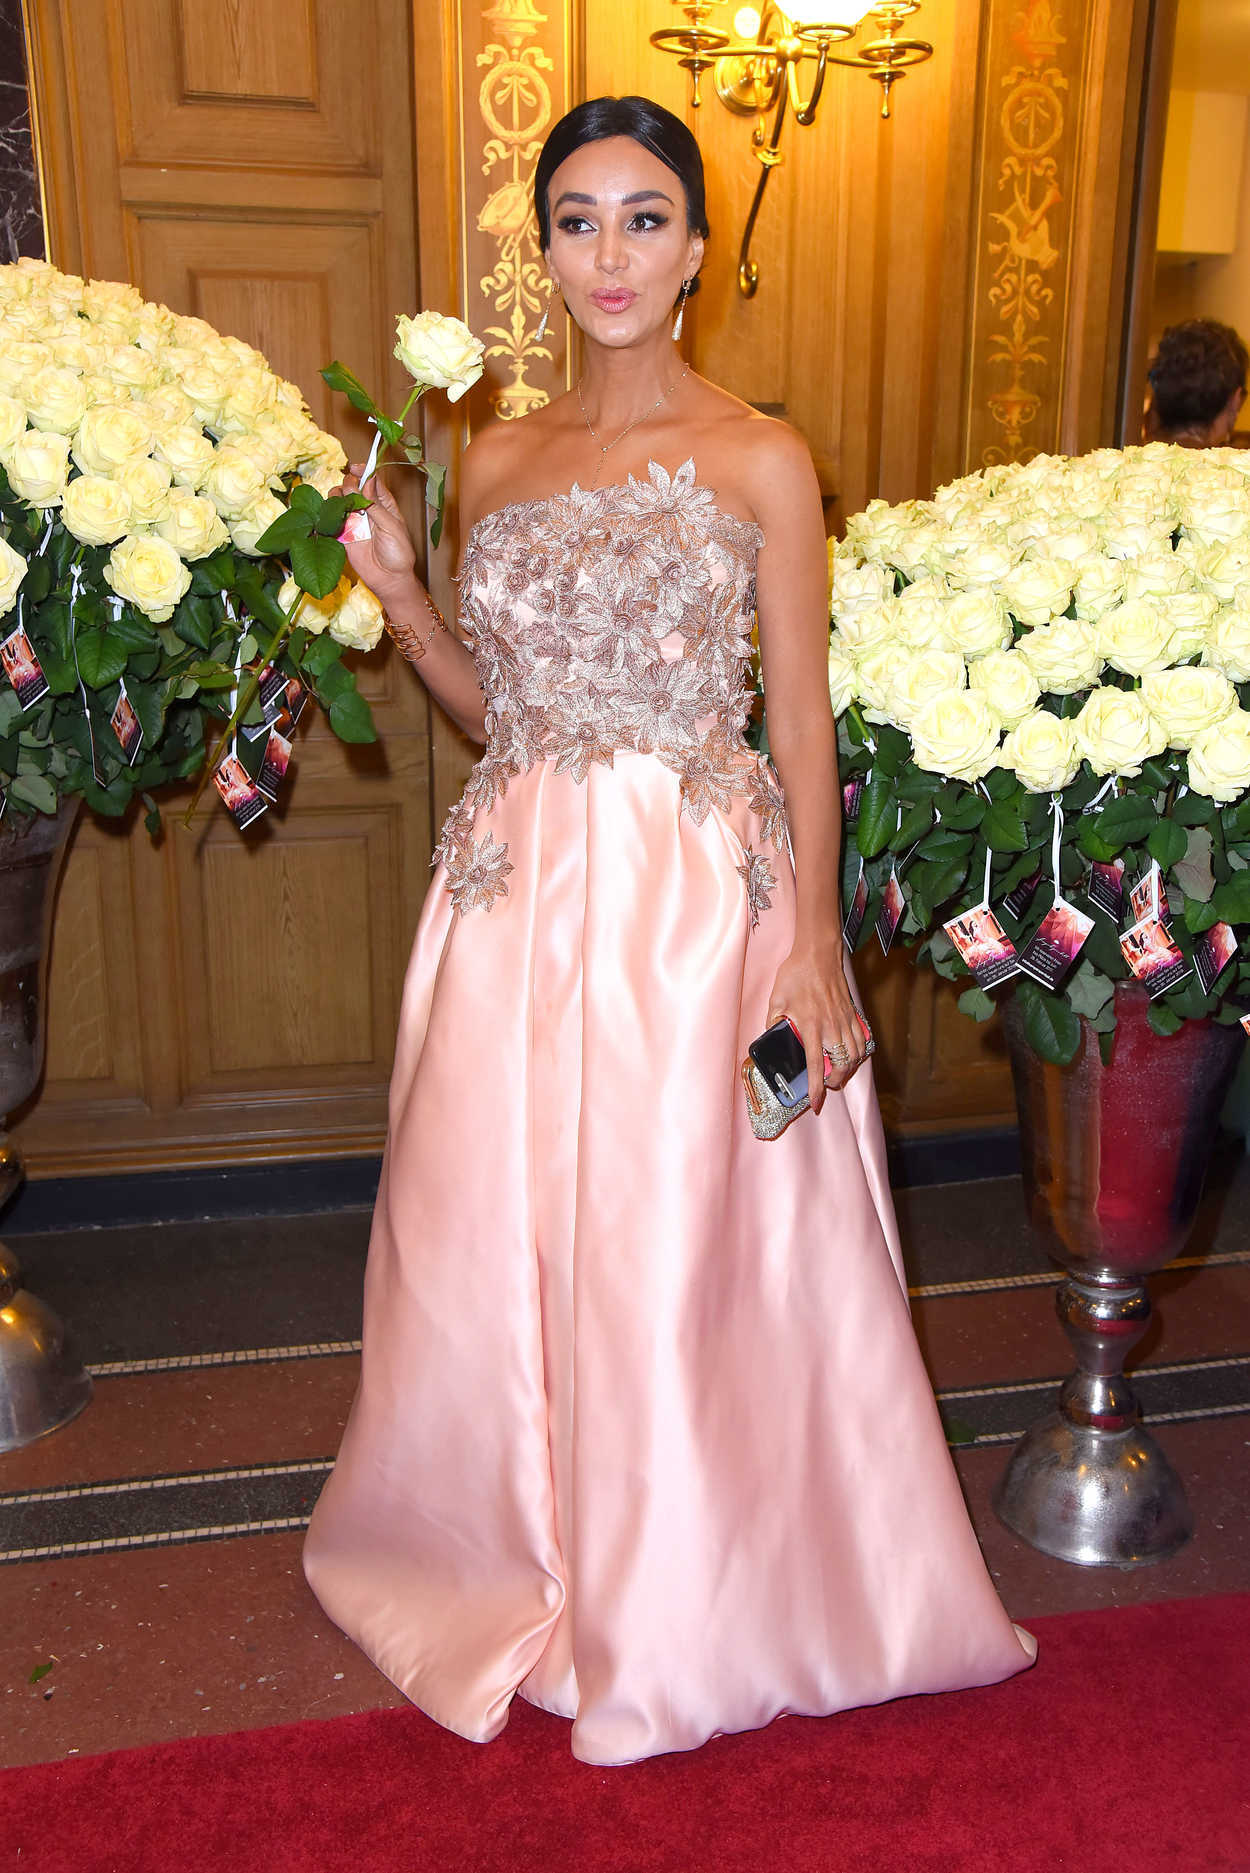 verona pooth at the 12th annual sempe opernball in dresden 02 03 2017